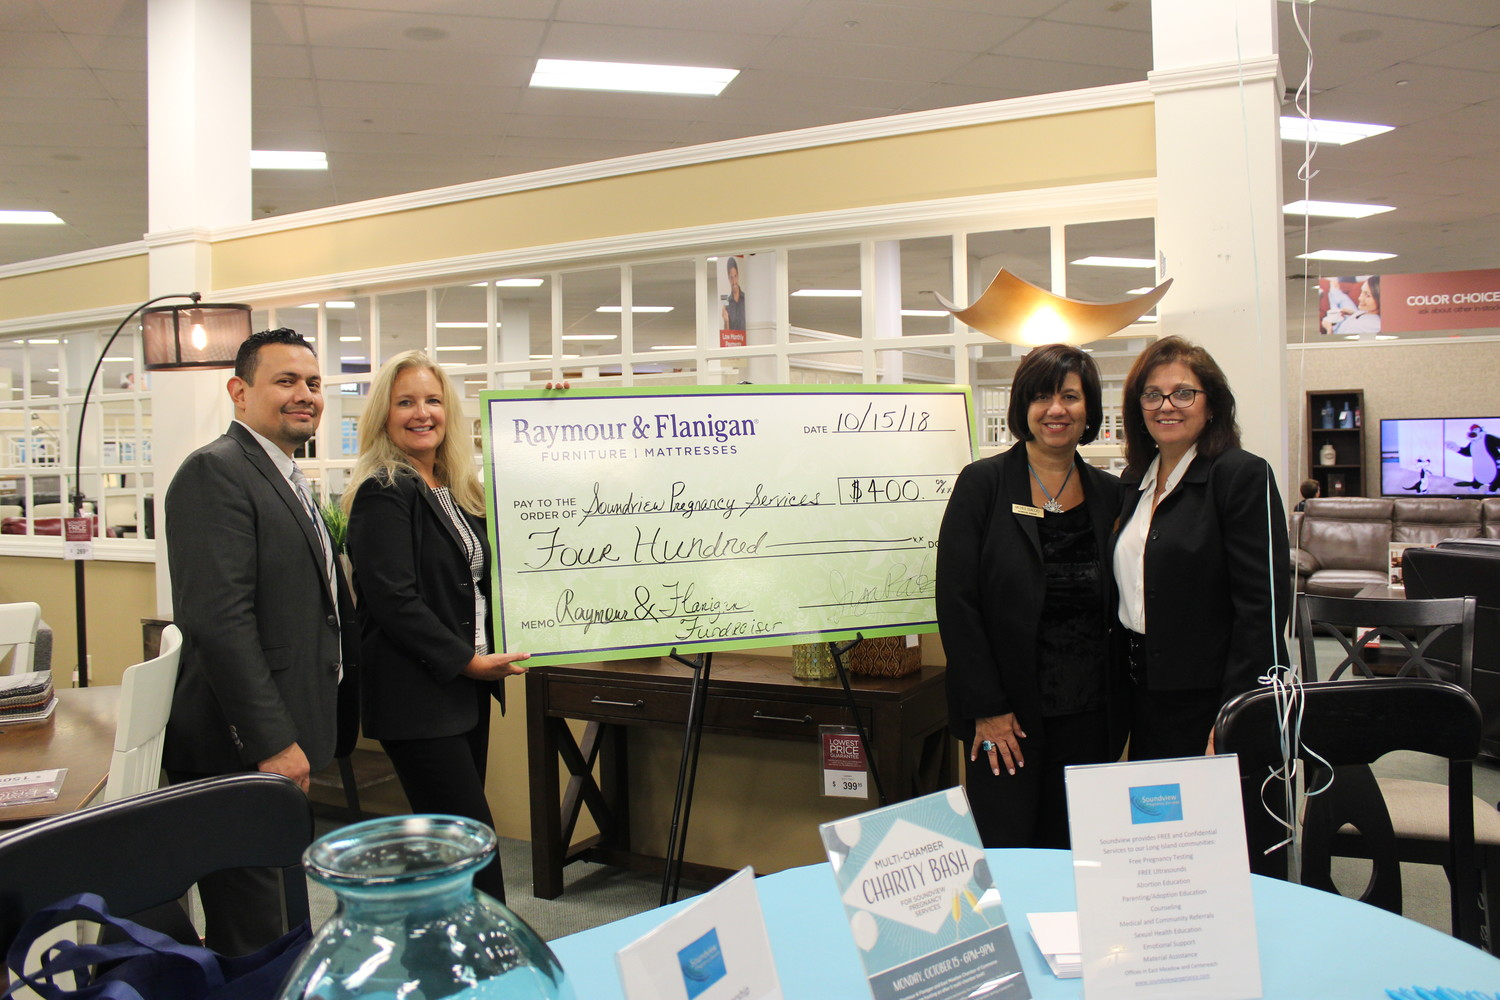 Christine Mooney, the vice president of the East Meadow Chamber of Commerce, far-right, joined with Juan Ruiz, left, and Michele Giaccio, right, both showroom managers at Raymour and Flanagan, to give a check for $400 to Julie Fehring, the director of development at Soundview Pregnancy Services.